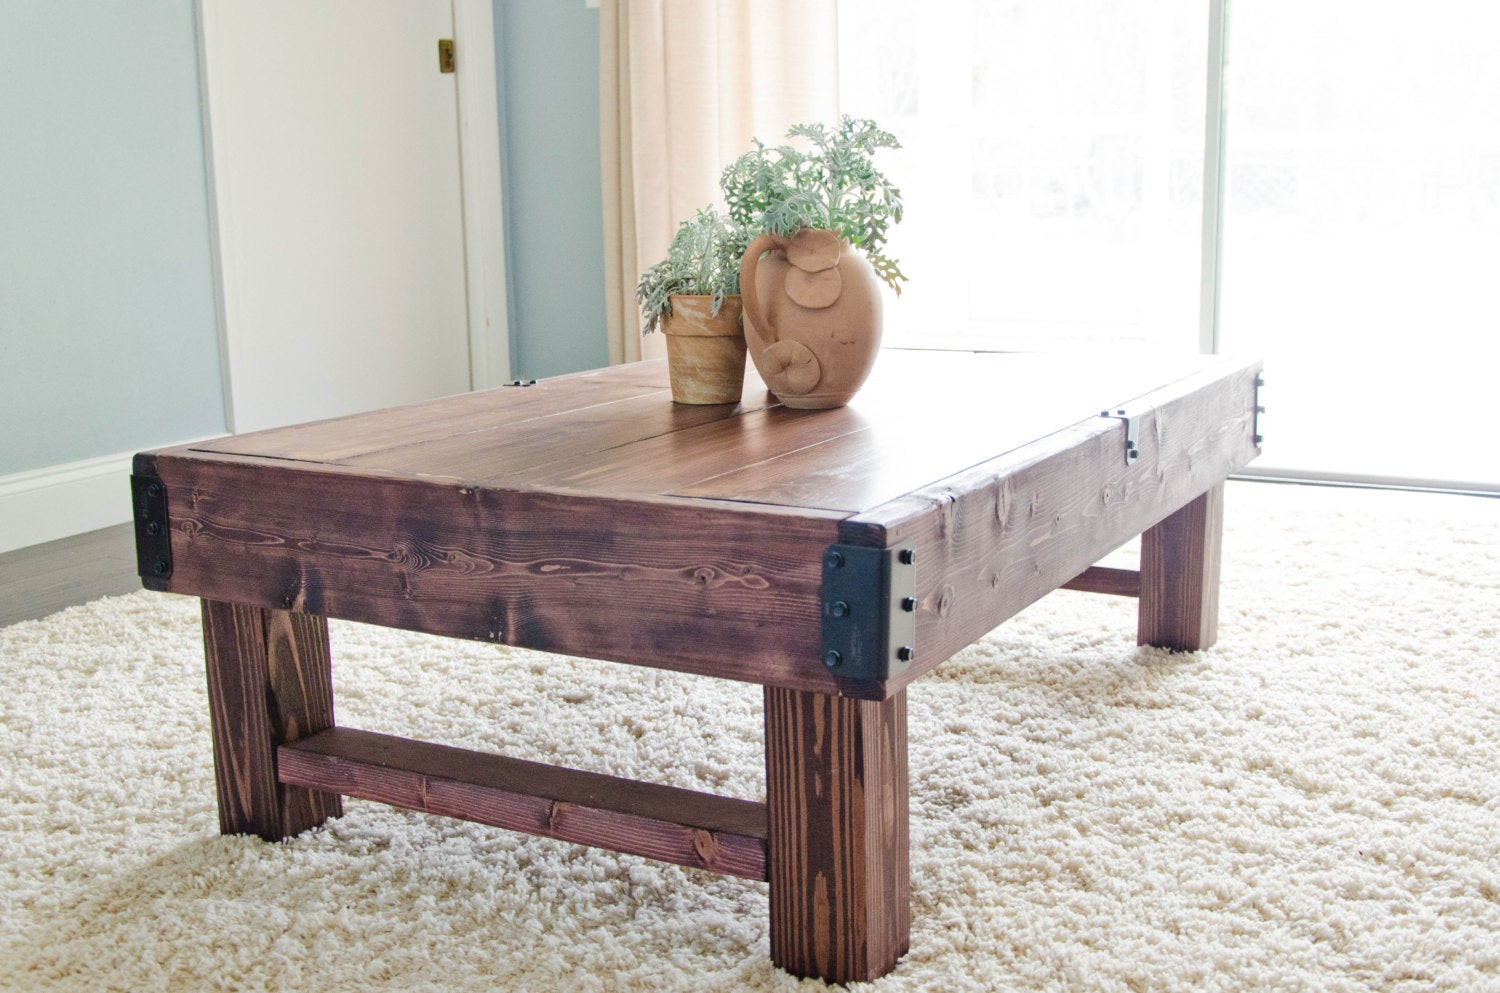 Best ideas about Farmhouse Coffee Table . Save or Pin Rustic Coffee Table Farmhouse Coffee Table Rustic Industrial Now.